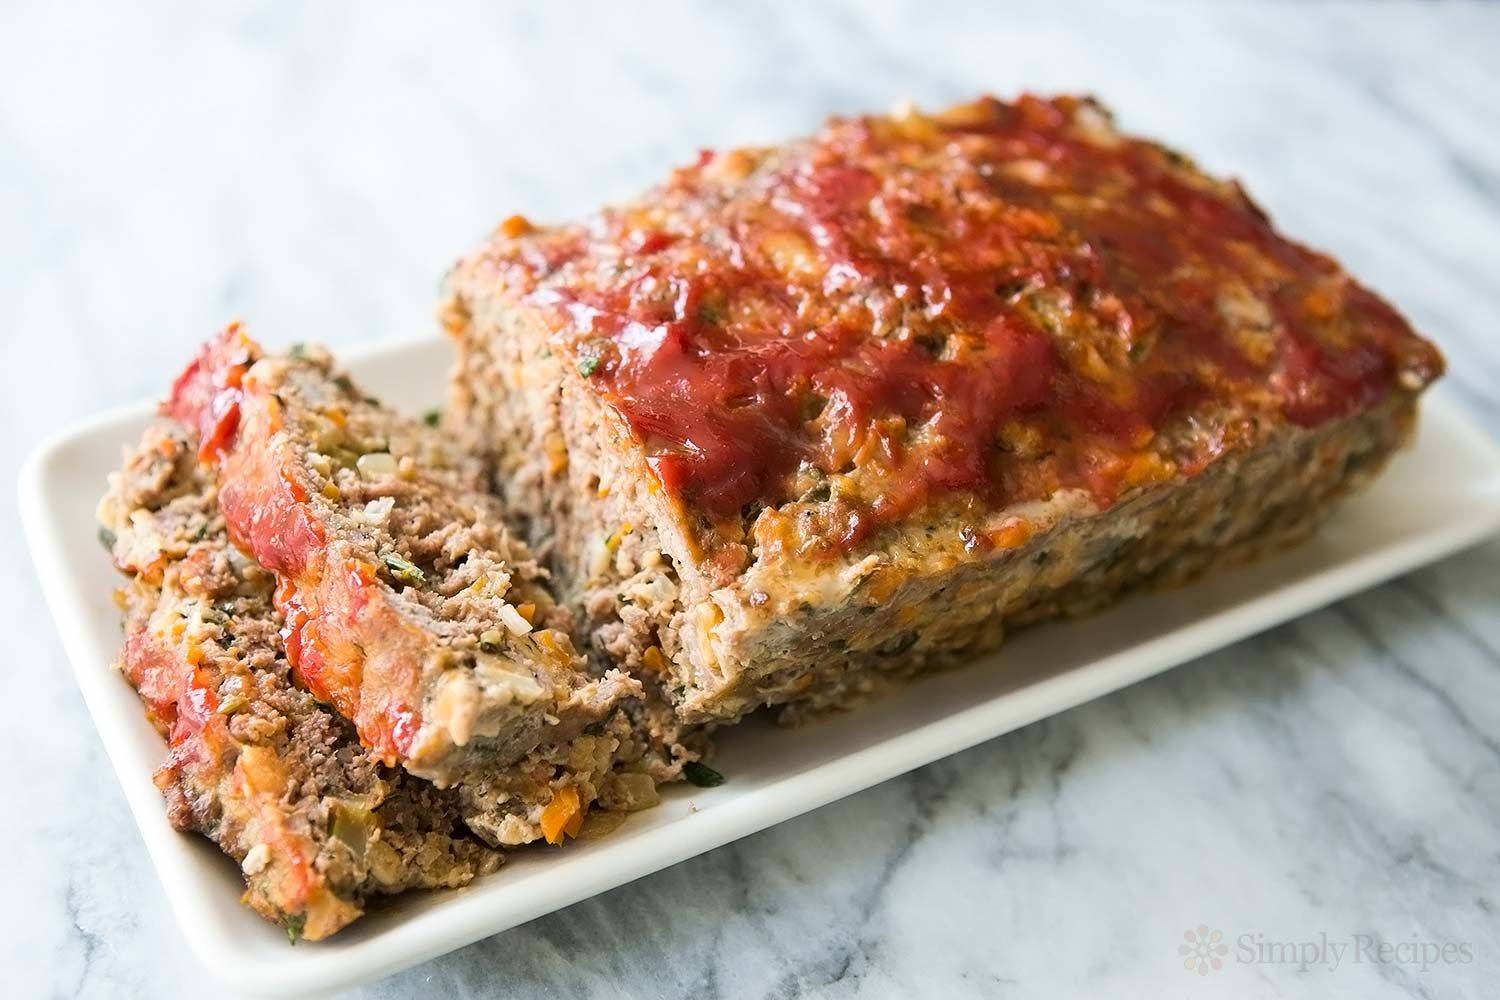 Classic Meatloaf Recipe With Images Homemade Meatloaf Classic Meatloaf Recipe Simply Recipes